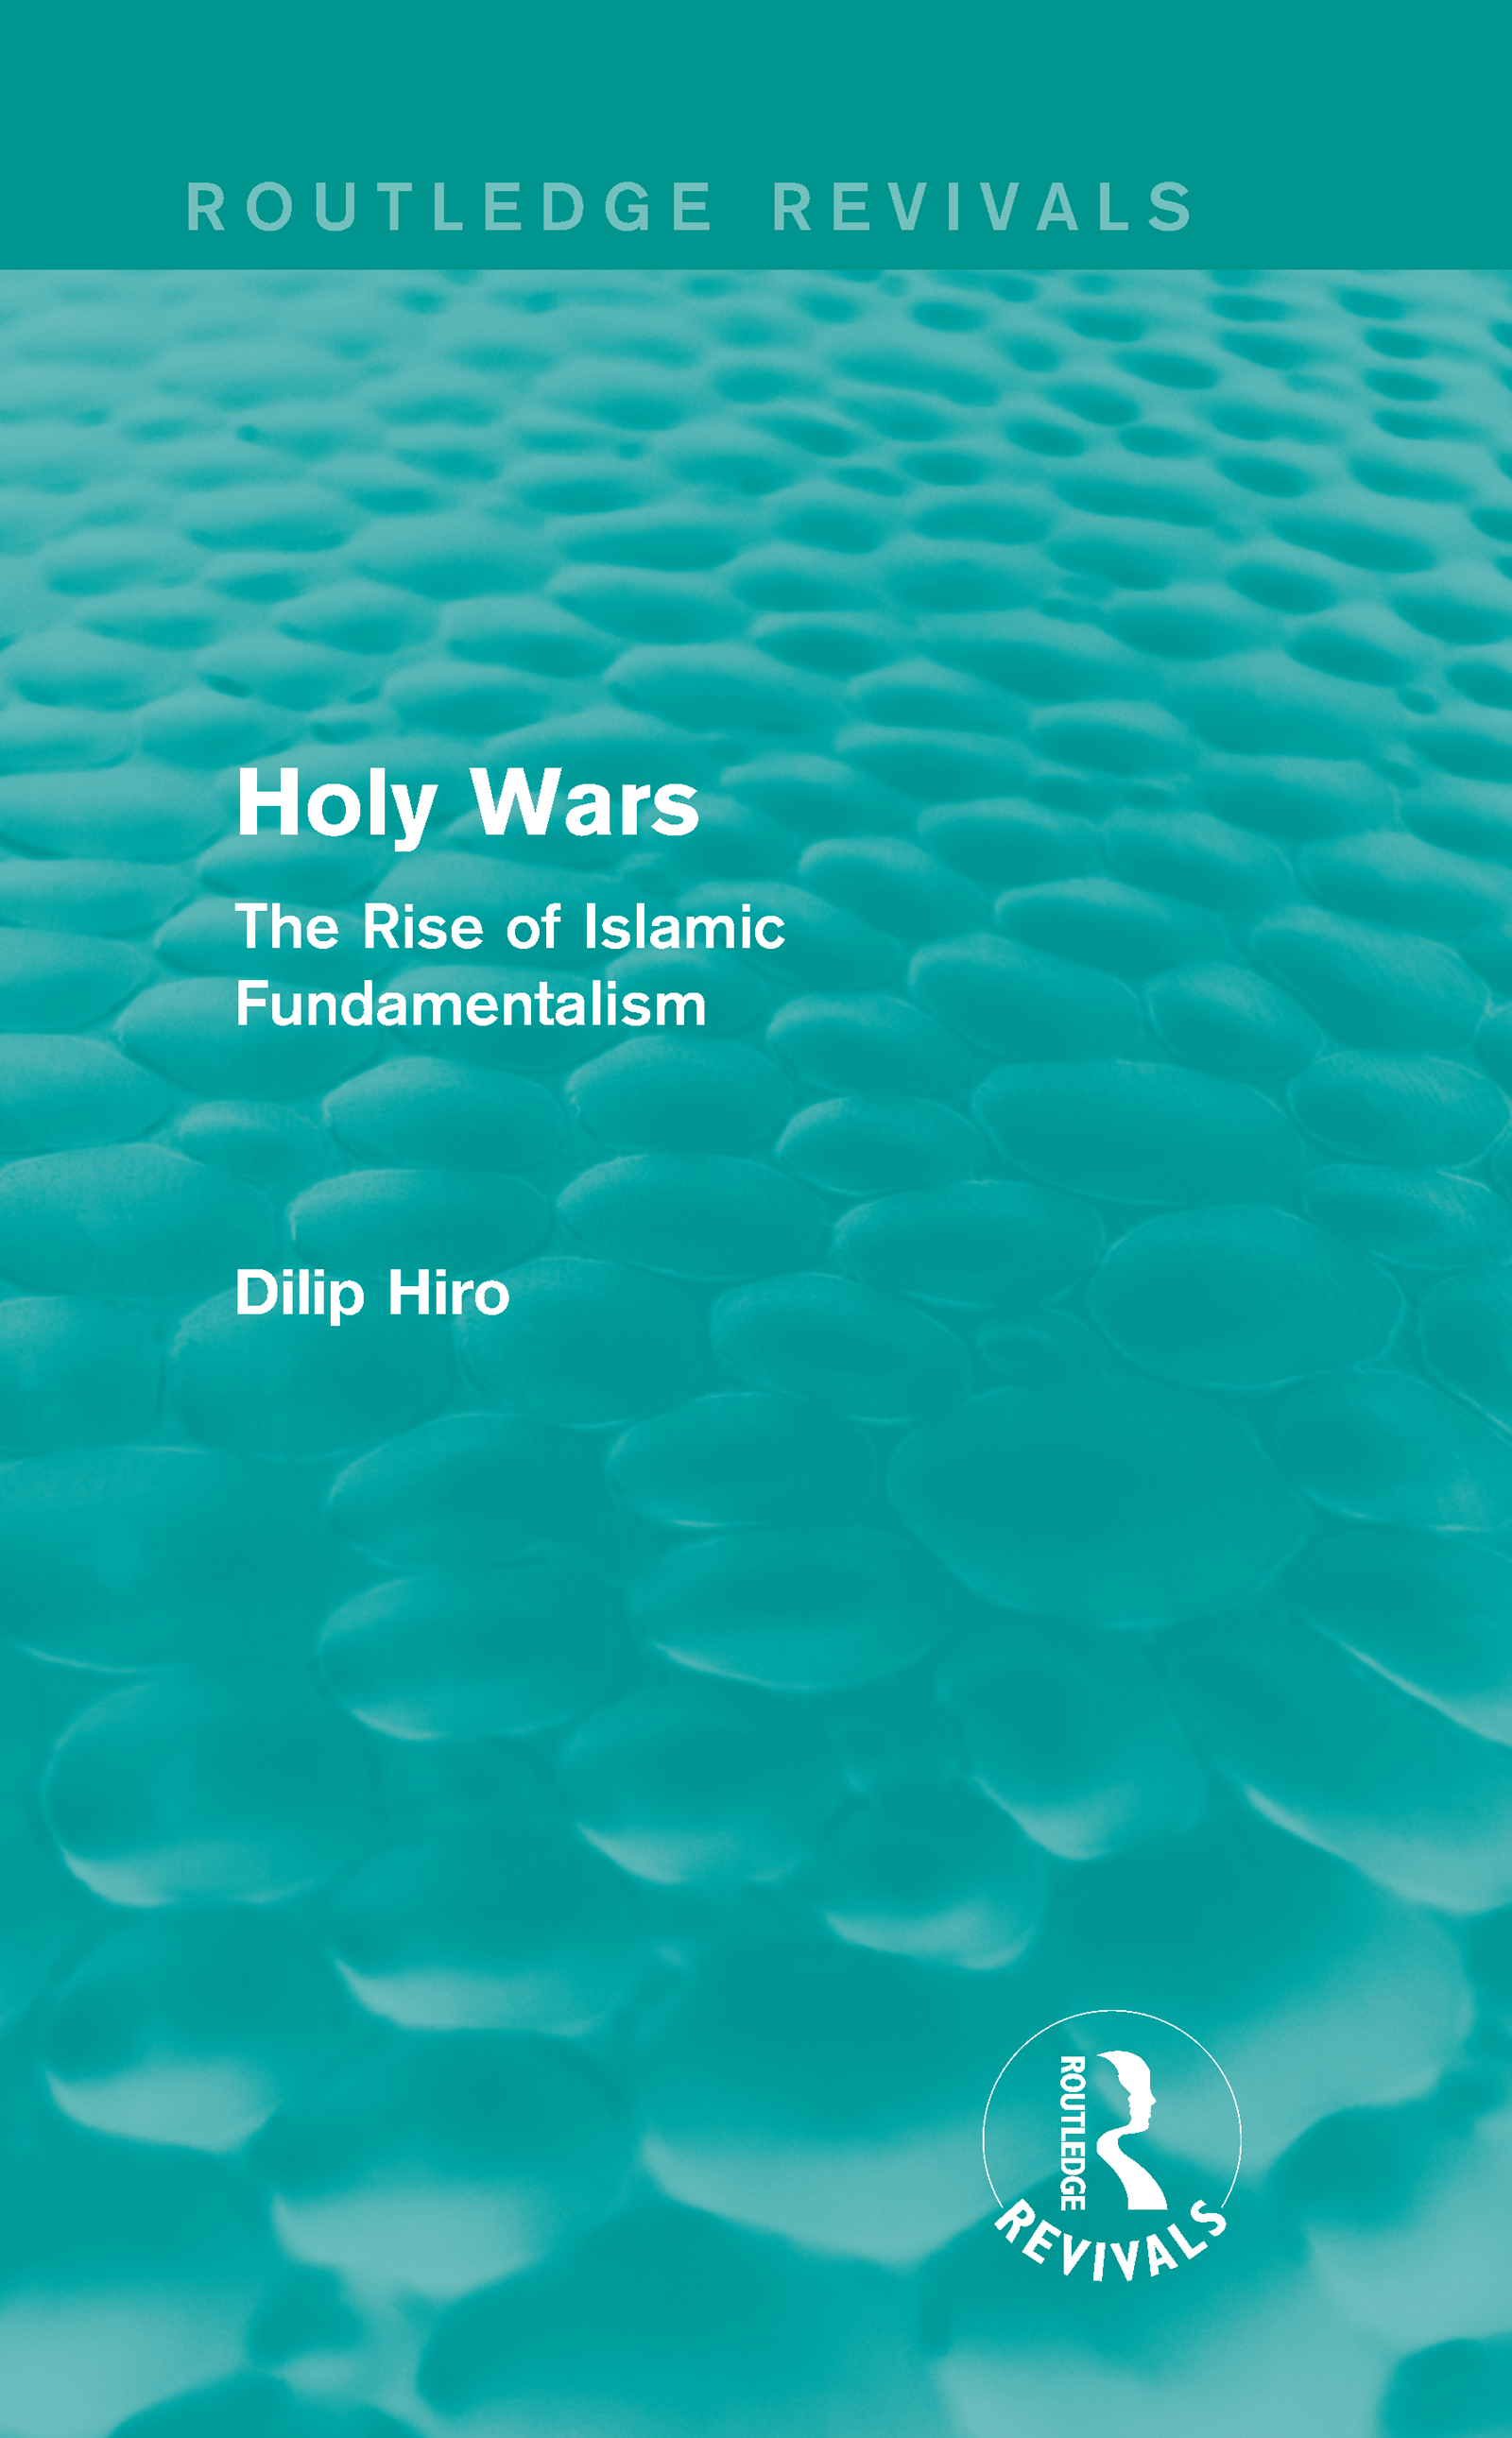 Holy Wars (Routledge Revivals): The Rise of Islamic Fundamentalism (Hardback) book cover